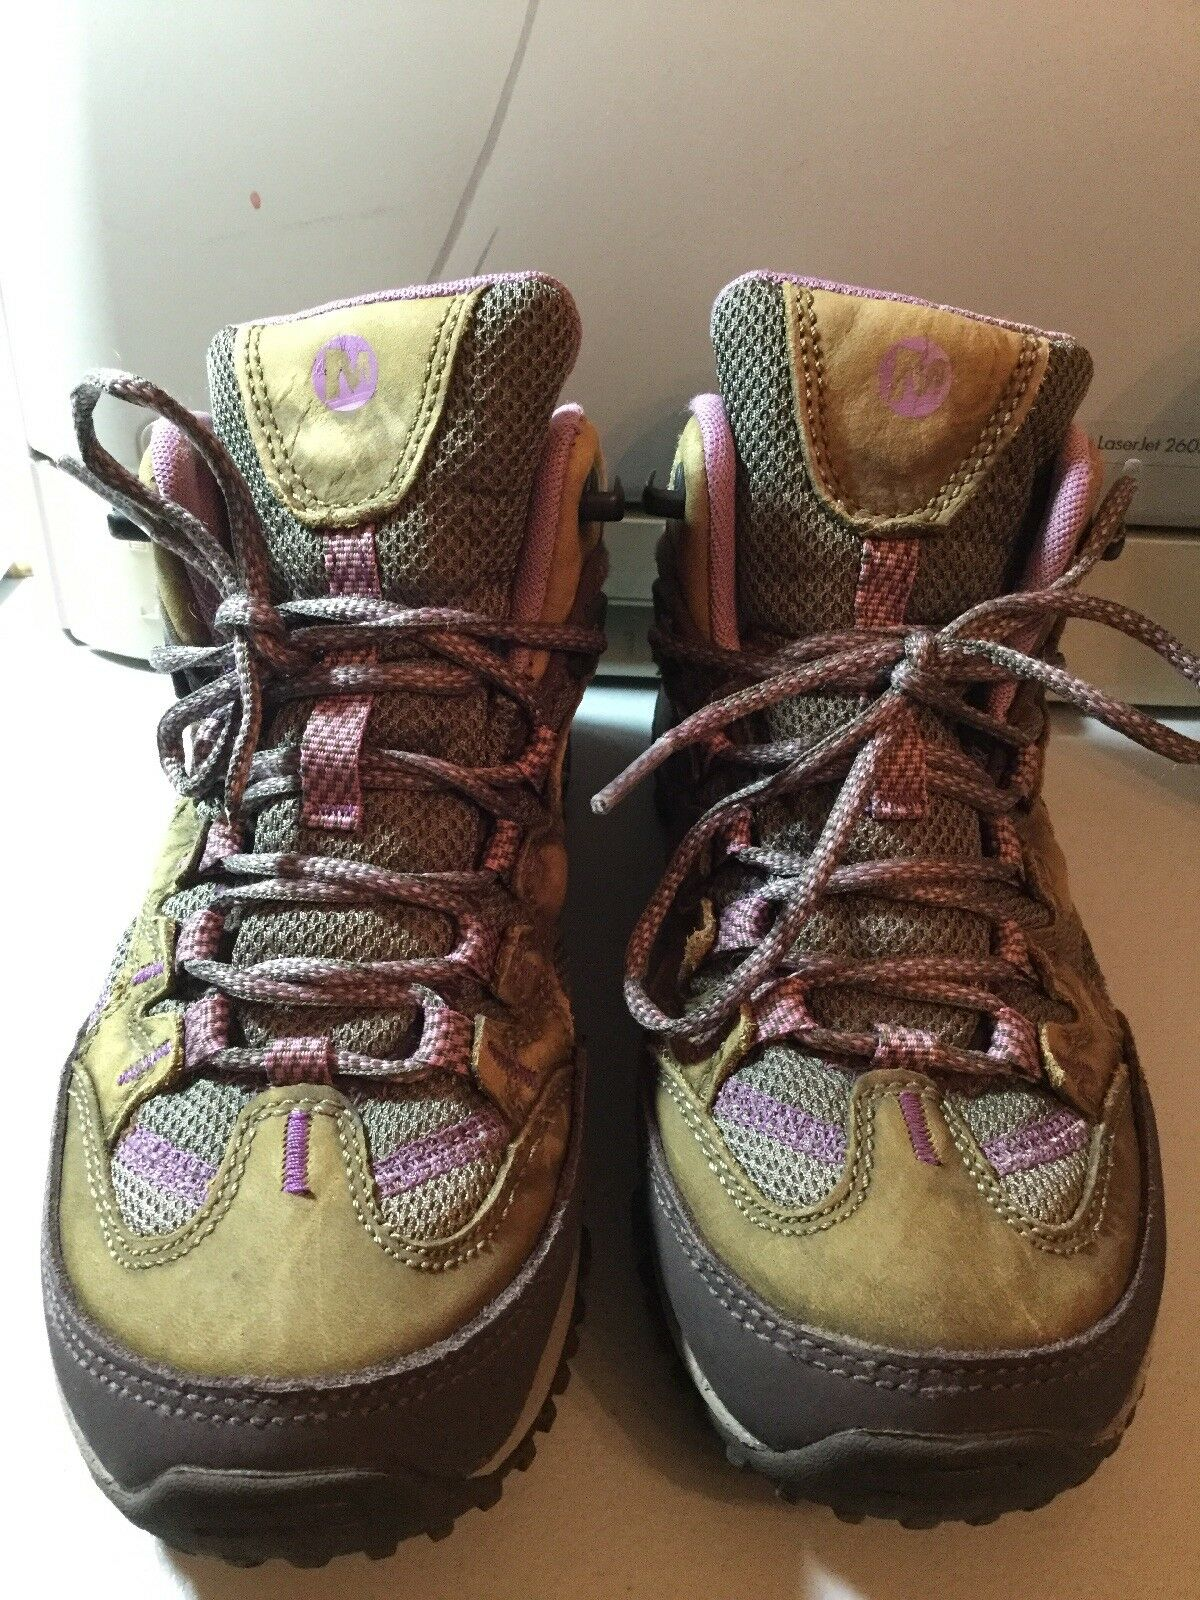 MERRELL Brindle Hiking shoes Women's Size 7 Pre-owned Lavender